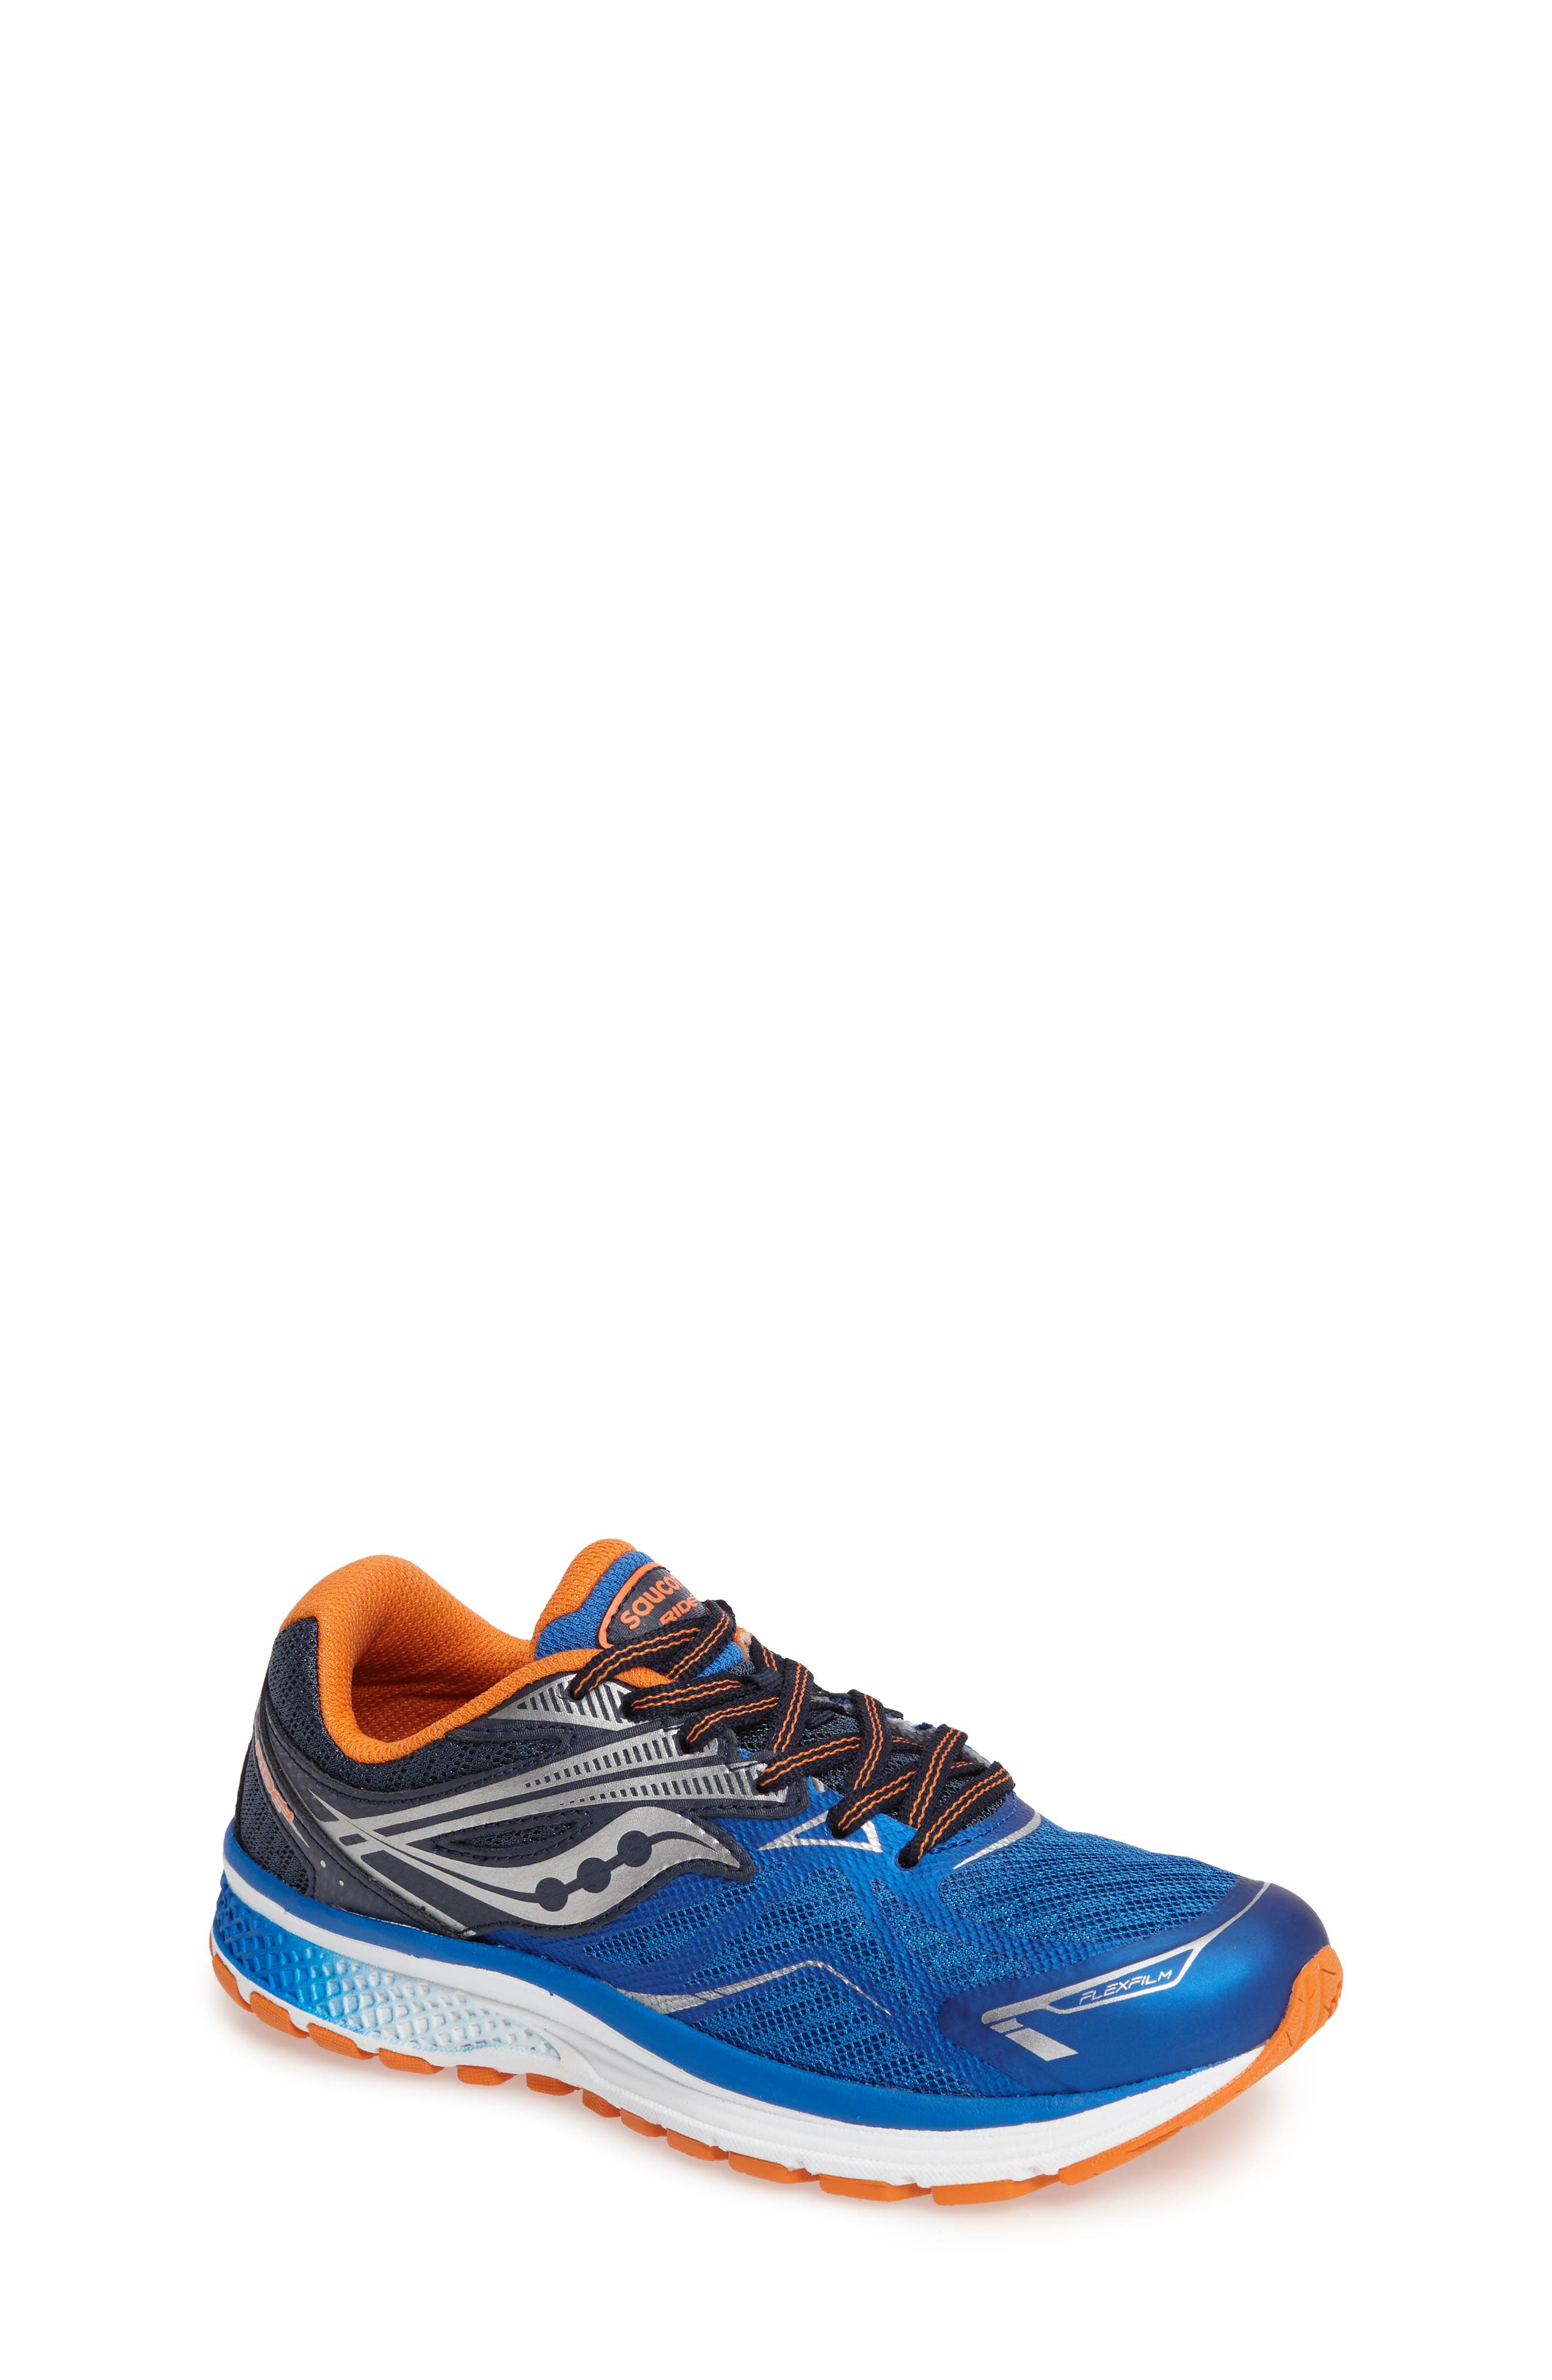 Guide 9 Running Shoe,                         Main,                         color, 400